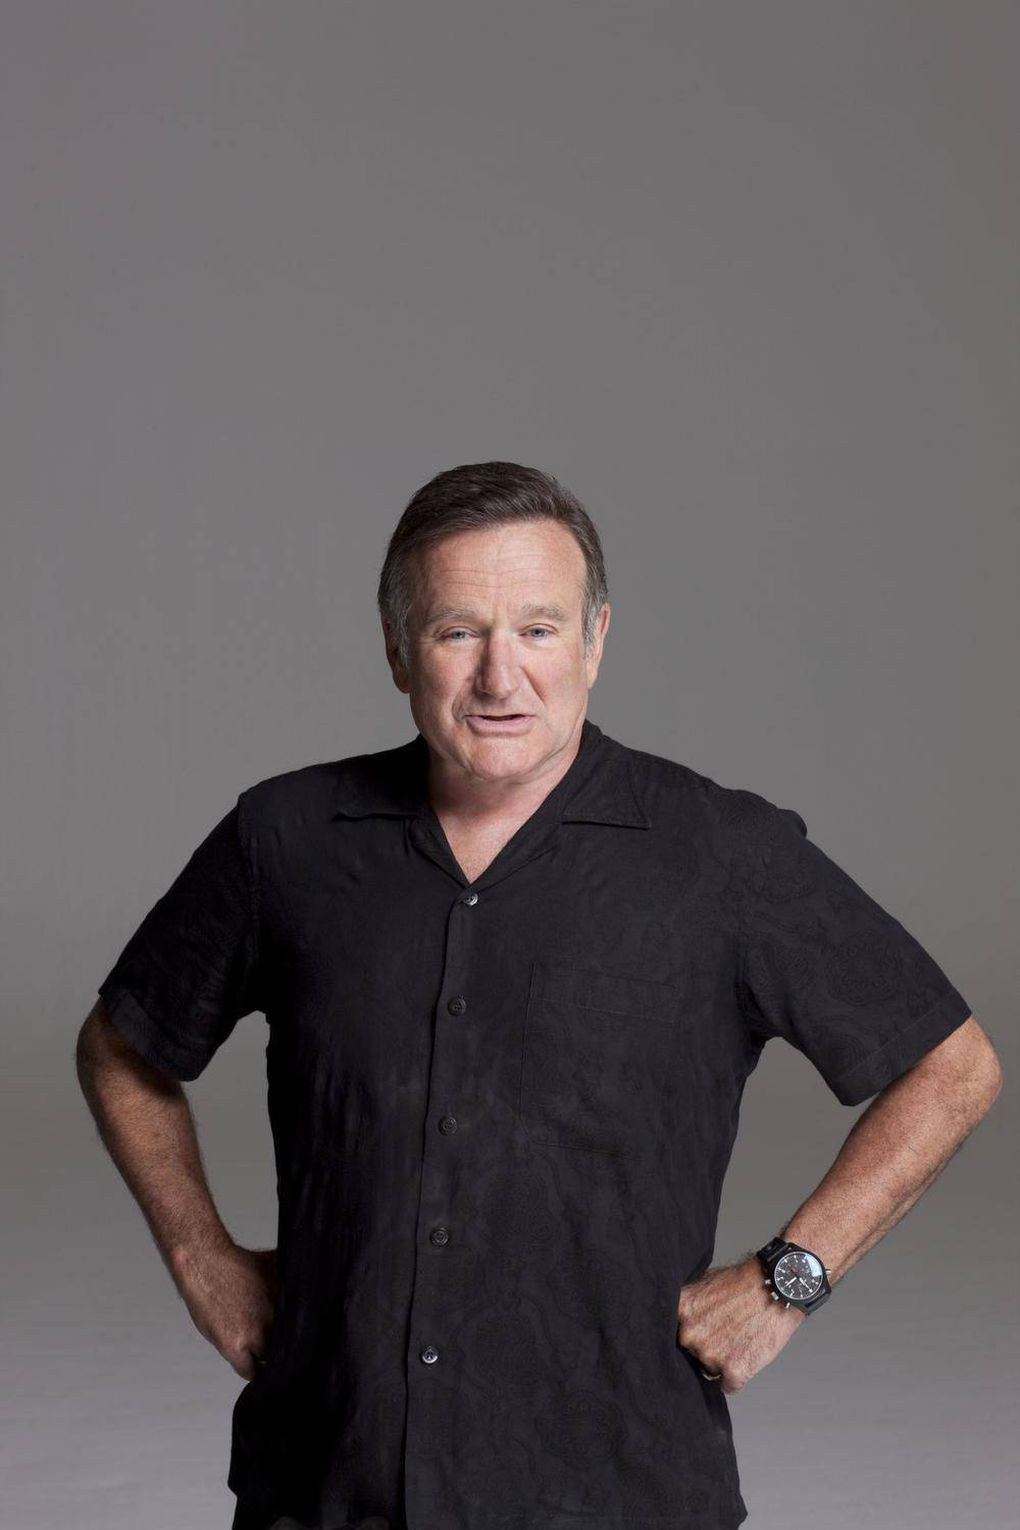 In pictures: Robin Williams, 1951-2014